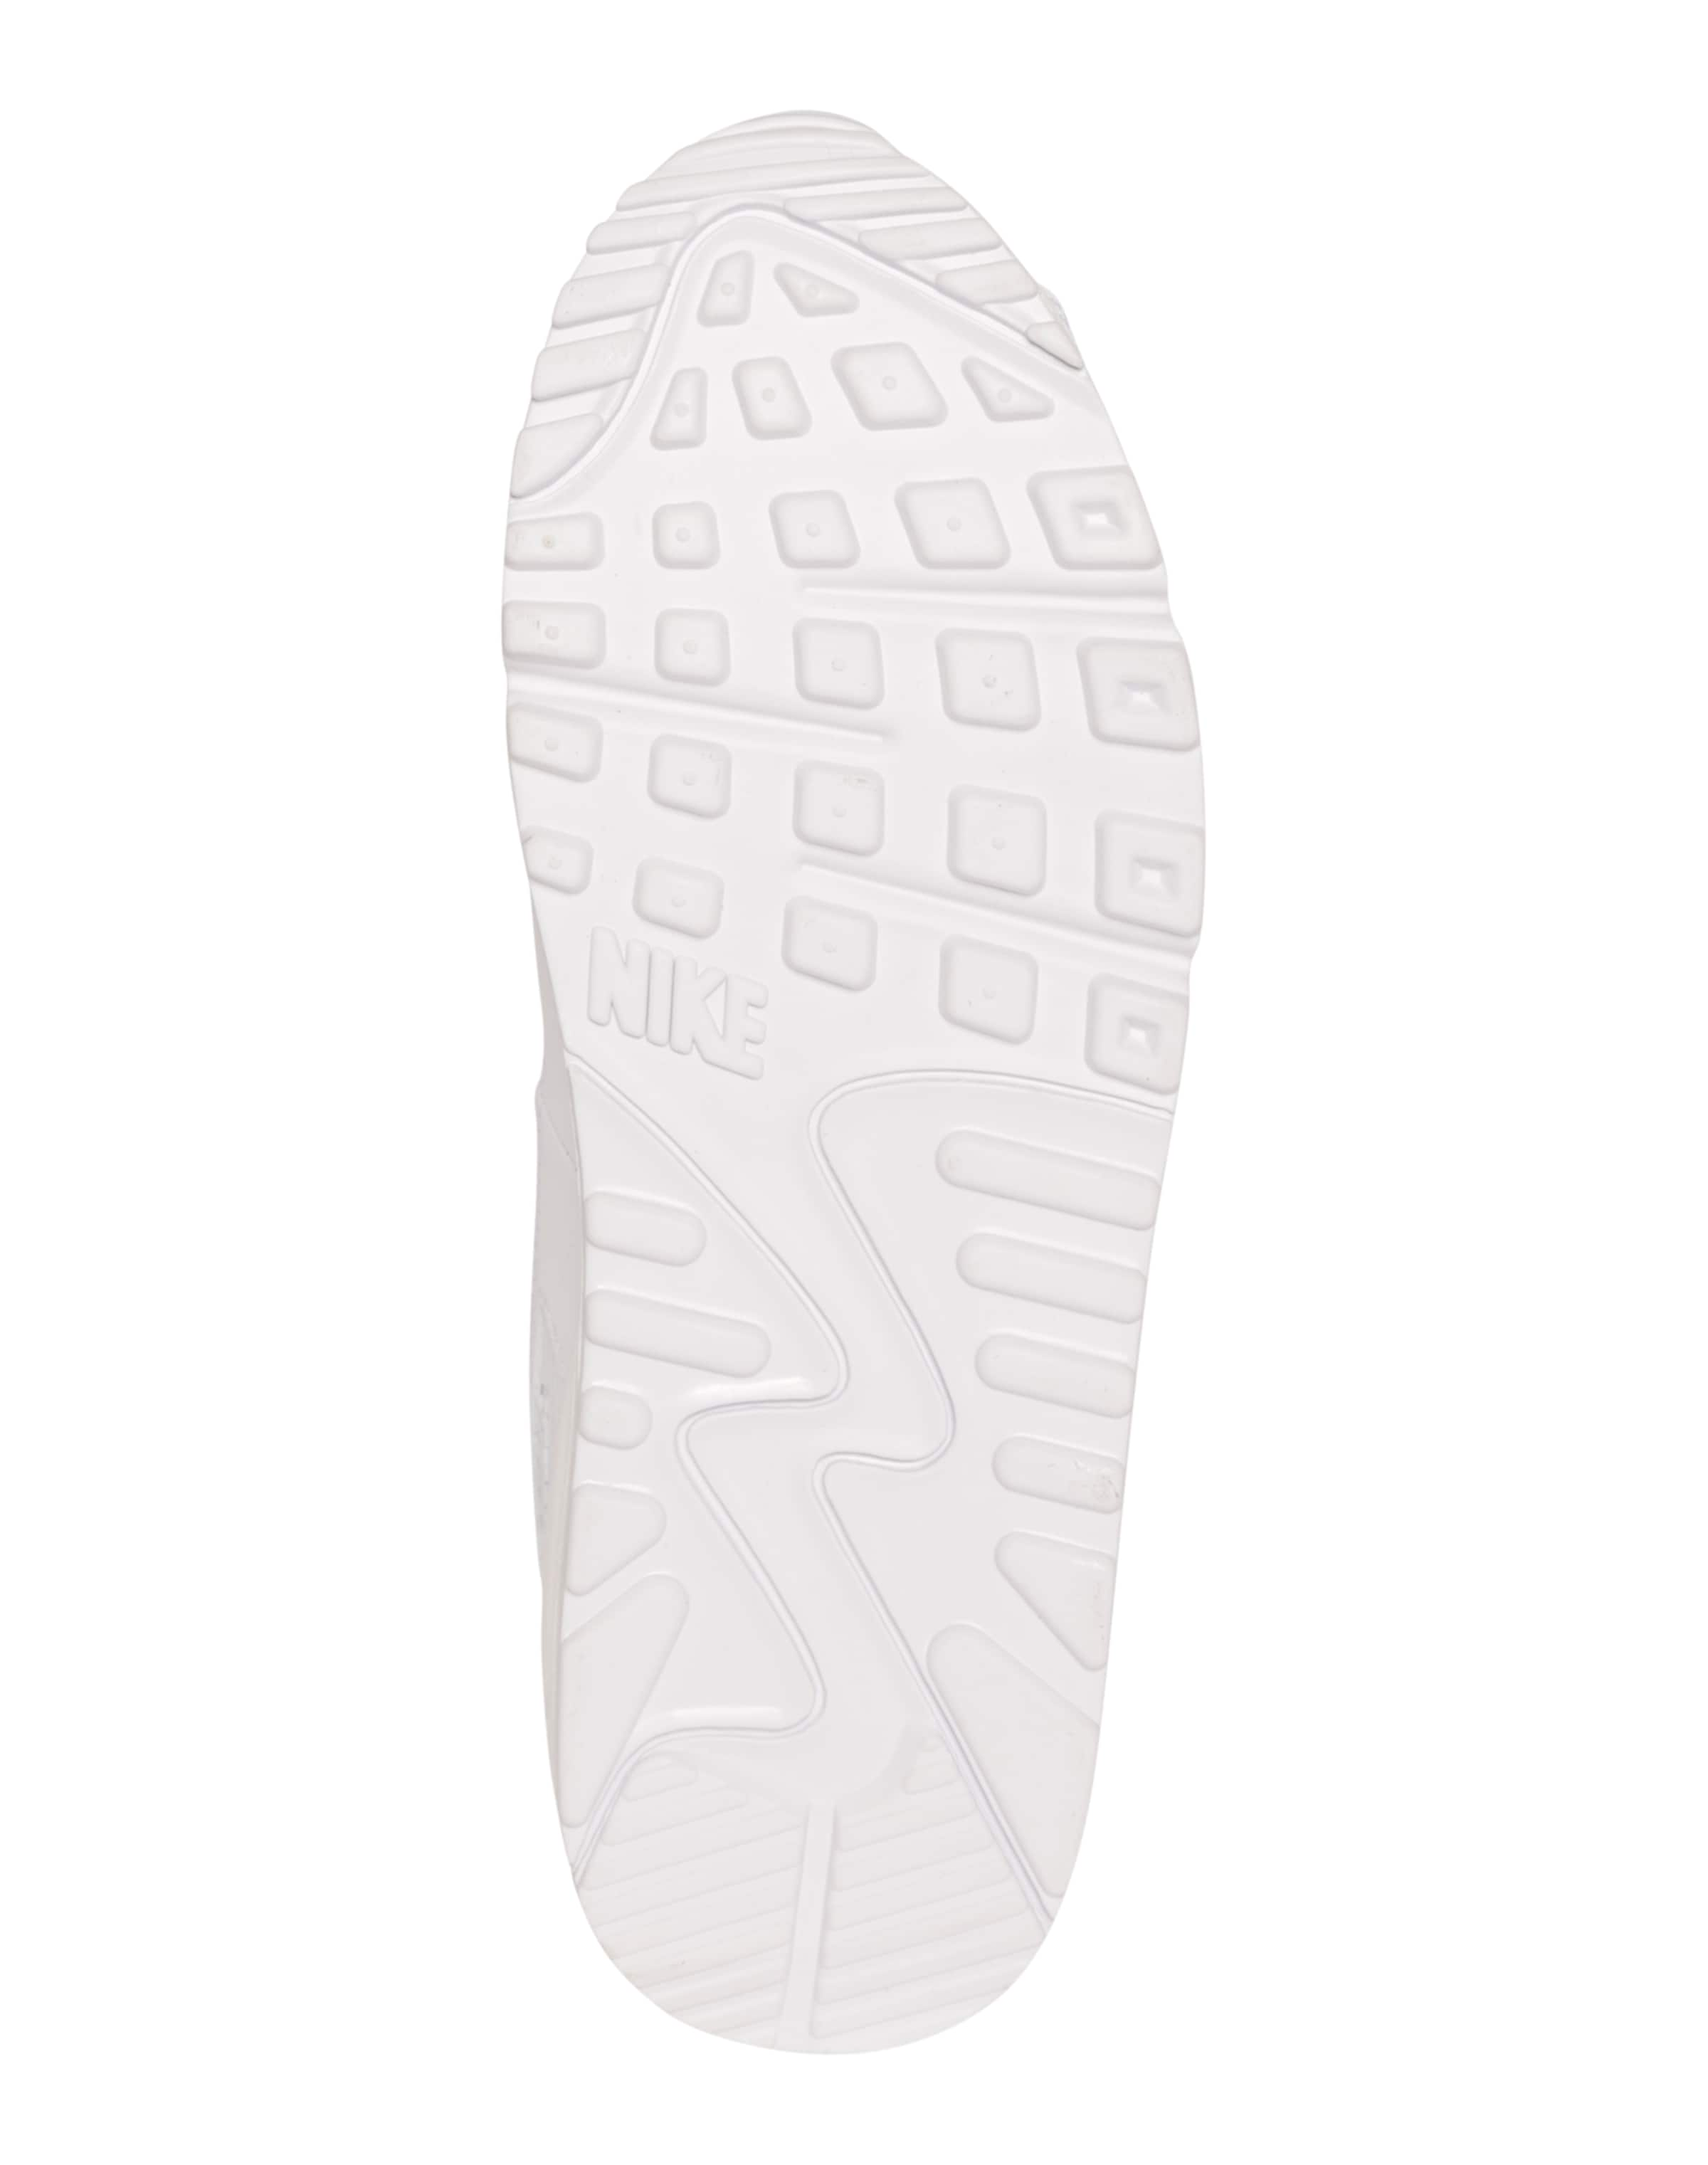 En Baskets 90 Blanc Sportswear Basses Max Essential' 'air Nike Nv8w0mn